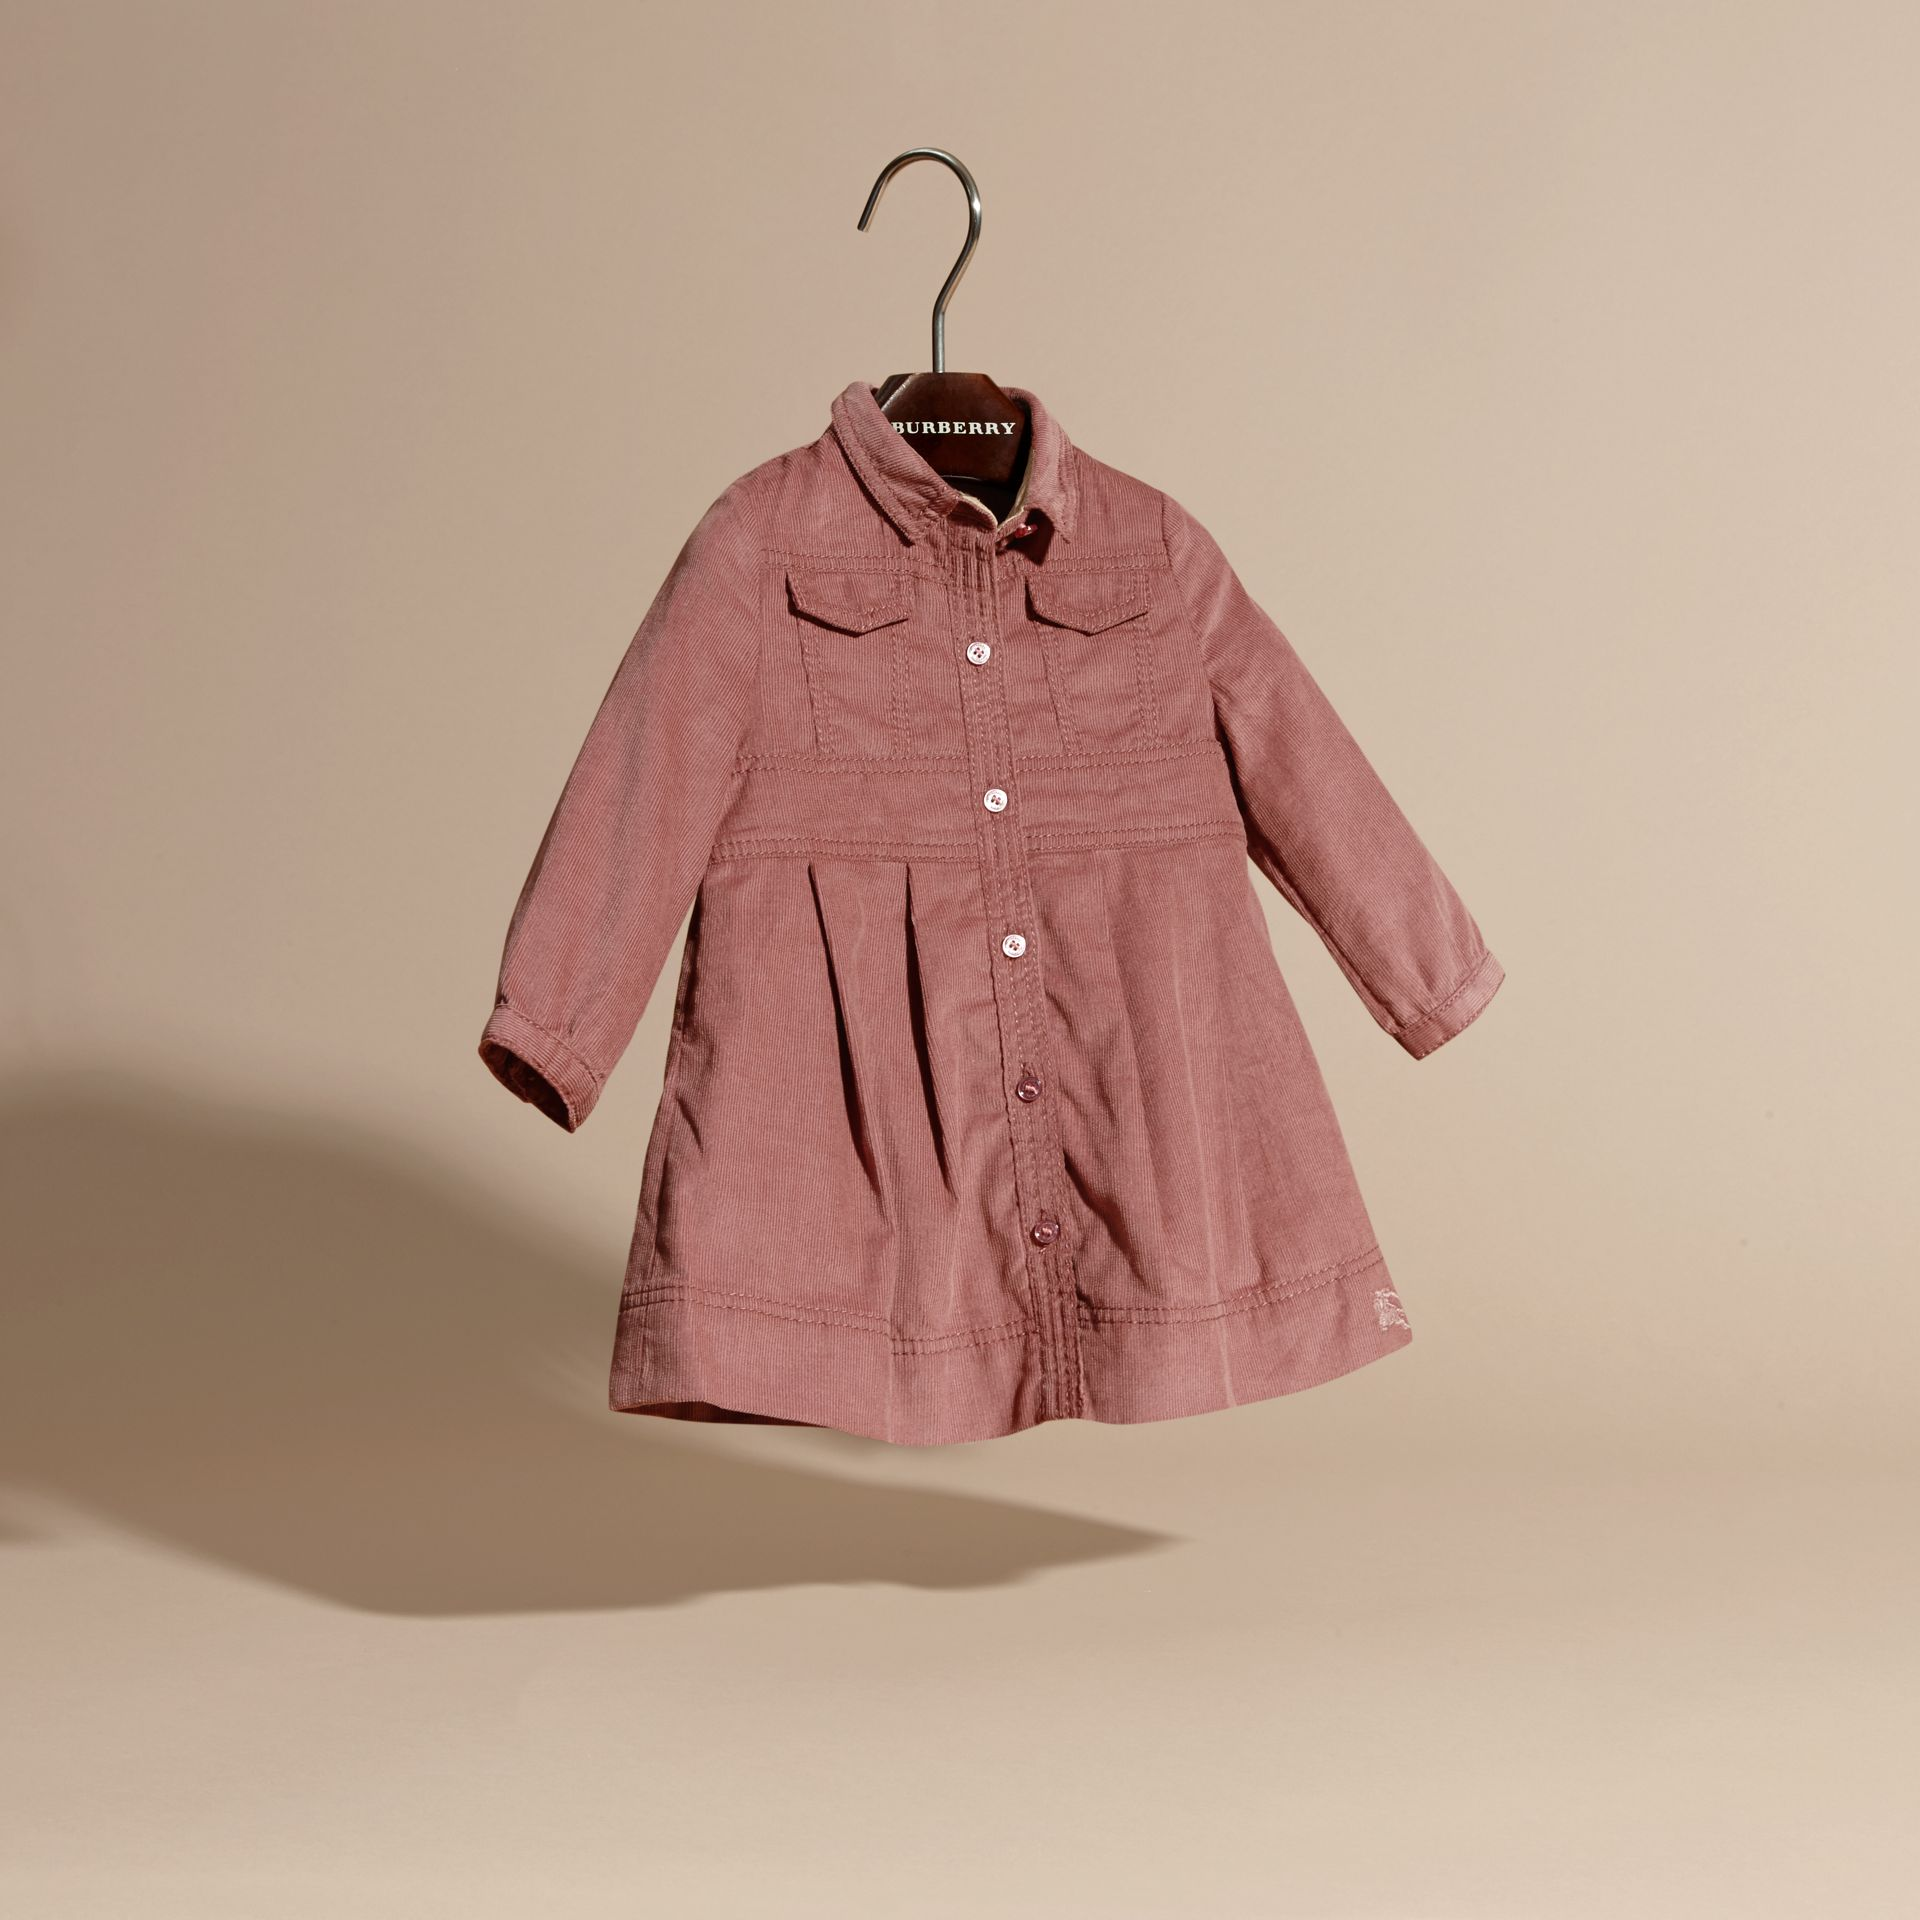 Pale ash rose Cotton Corduroy Shirt Dress Pale Ash Rose - gallery image 3